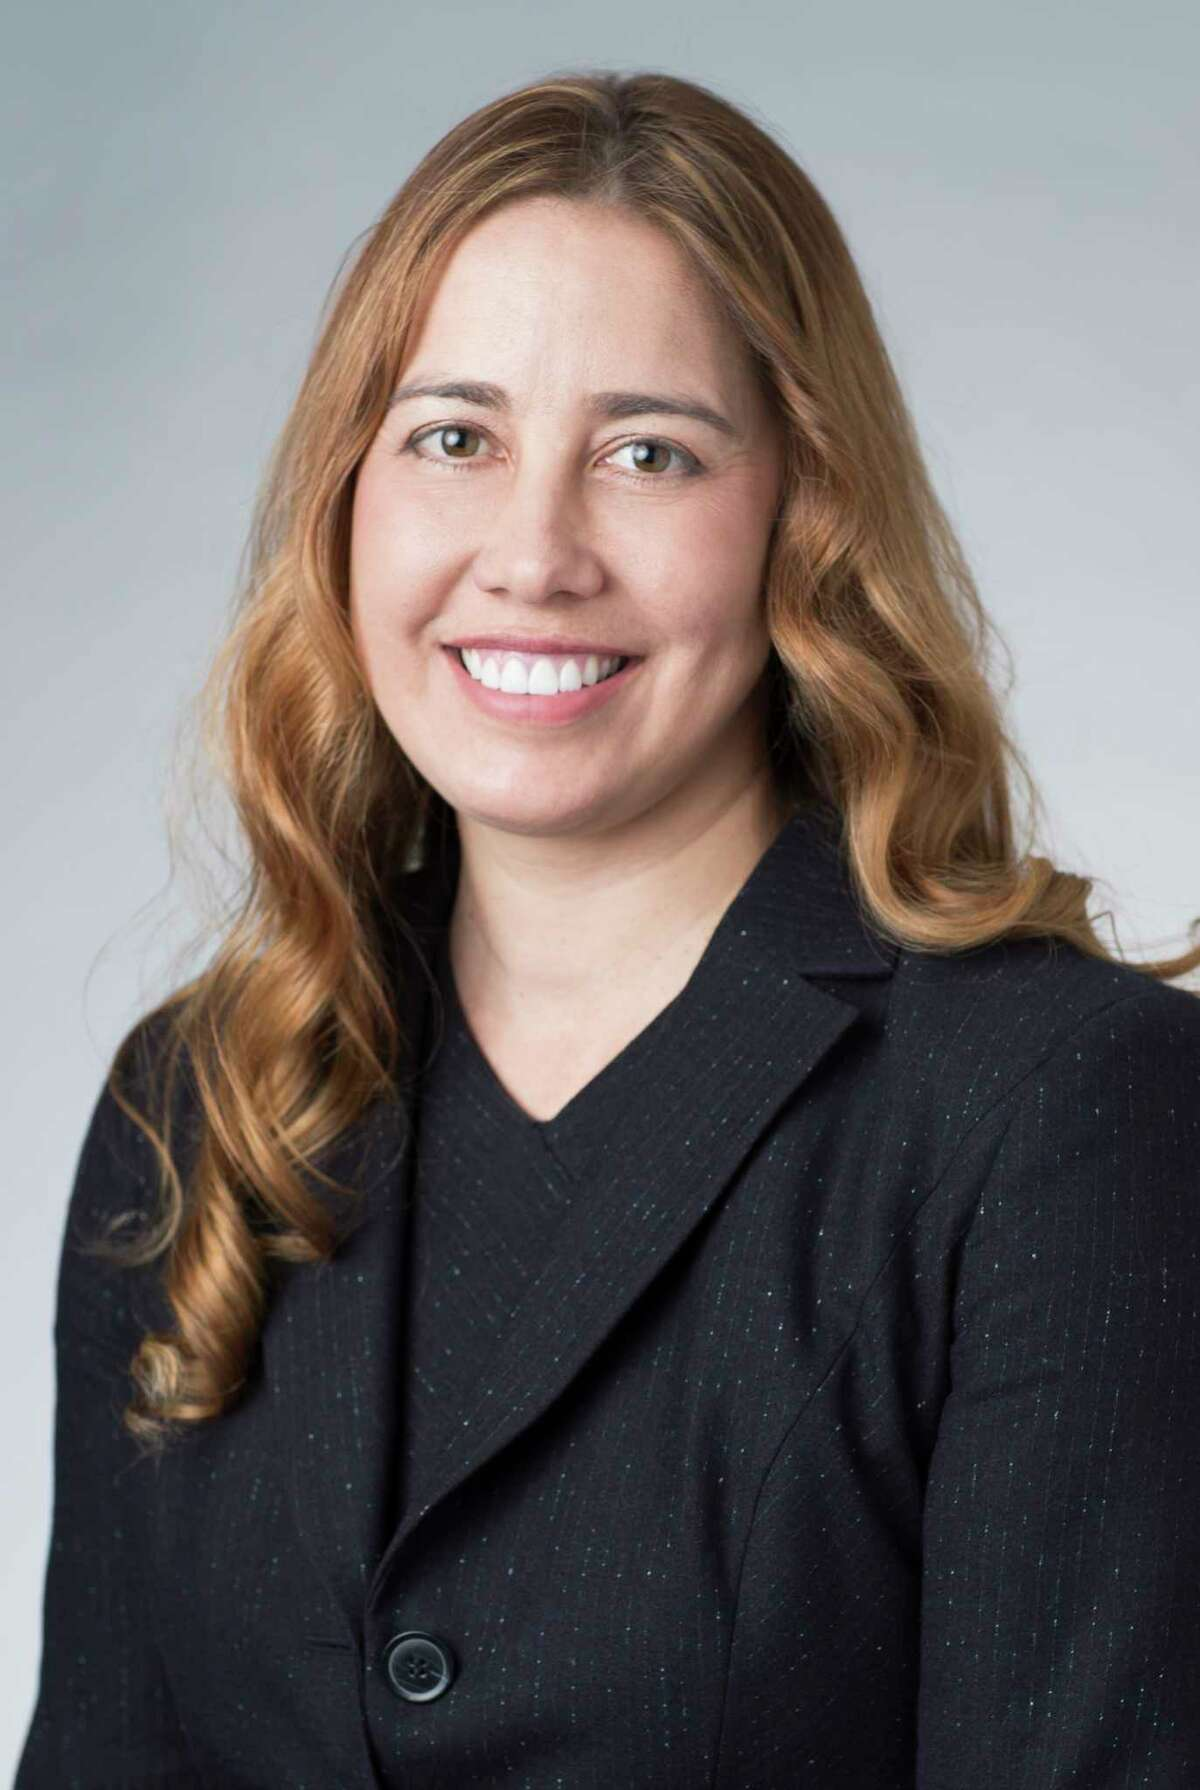 Appellate lawyer Jessica Zavadil Barger has been promoted to name partner at Wright Close & Barger. Founded by Tom Wright and Howard Close, the Houston law firm was formerly named Wright & Close.